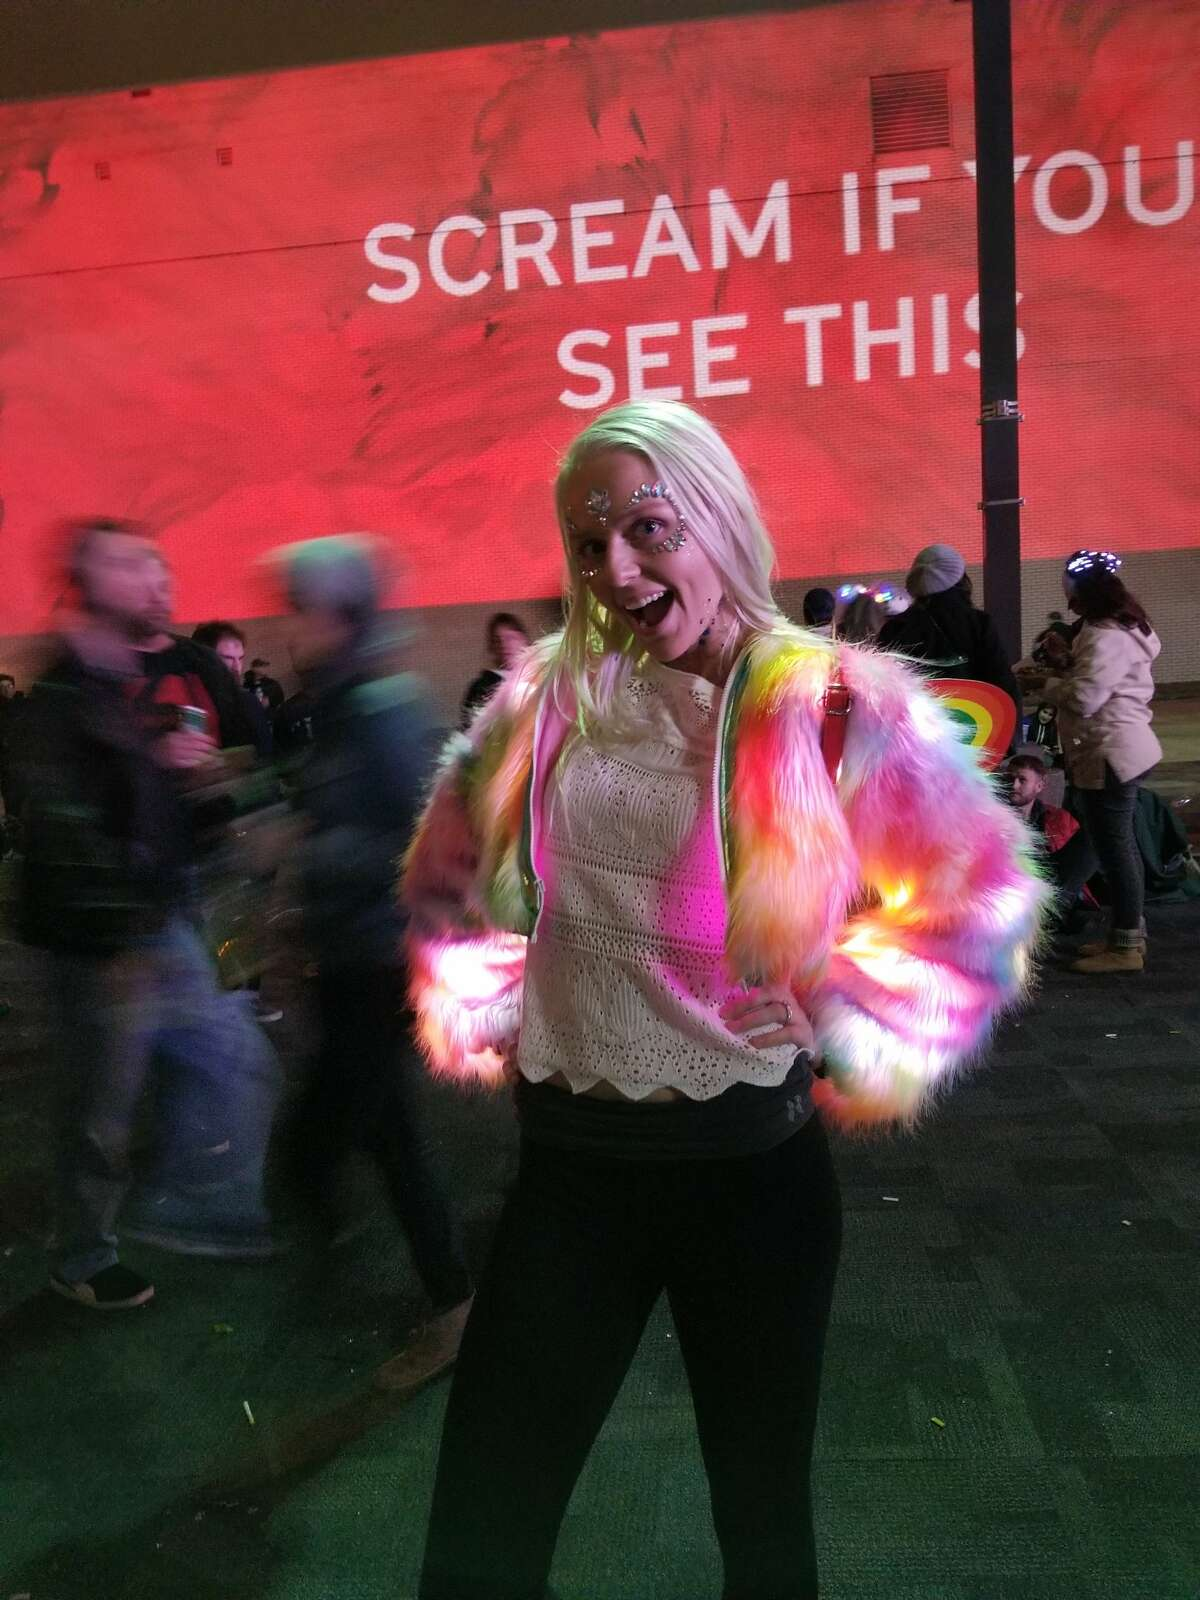 This is an appropriate level of excitement for a light-up fuzzy coat.